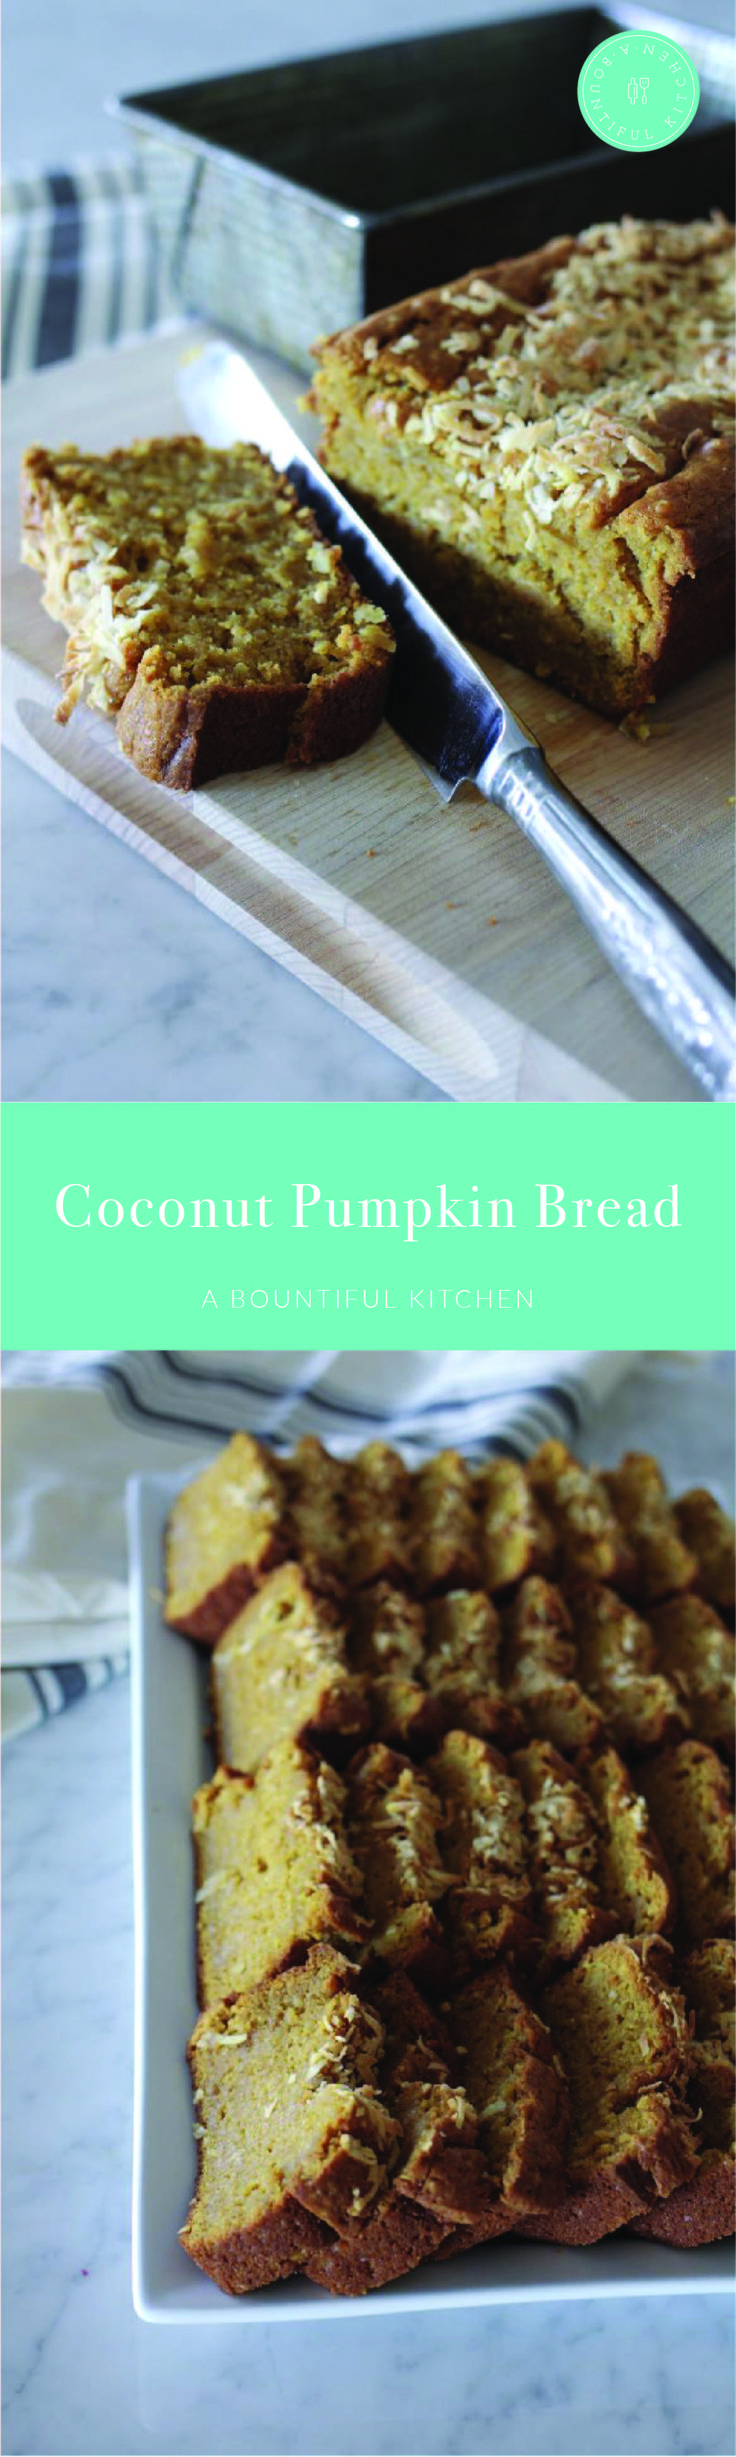 A Bountiful Kitchen: Coconut Pumpkin Bread actually is a quick bread, so it is perfectly acceptable to be served at breakfast or brunch. The combination of pumpkin and pudding make this bread unbelievably moist and rich. #breakfast #brunch #quickbread #pumpkin #holidaybaking